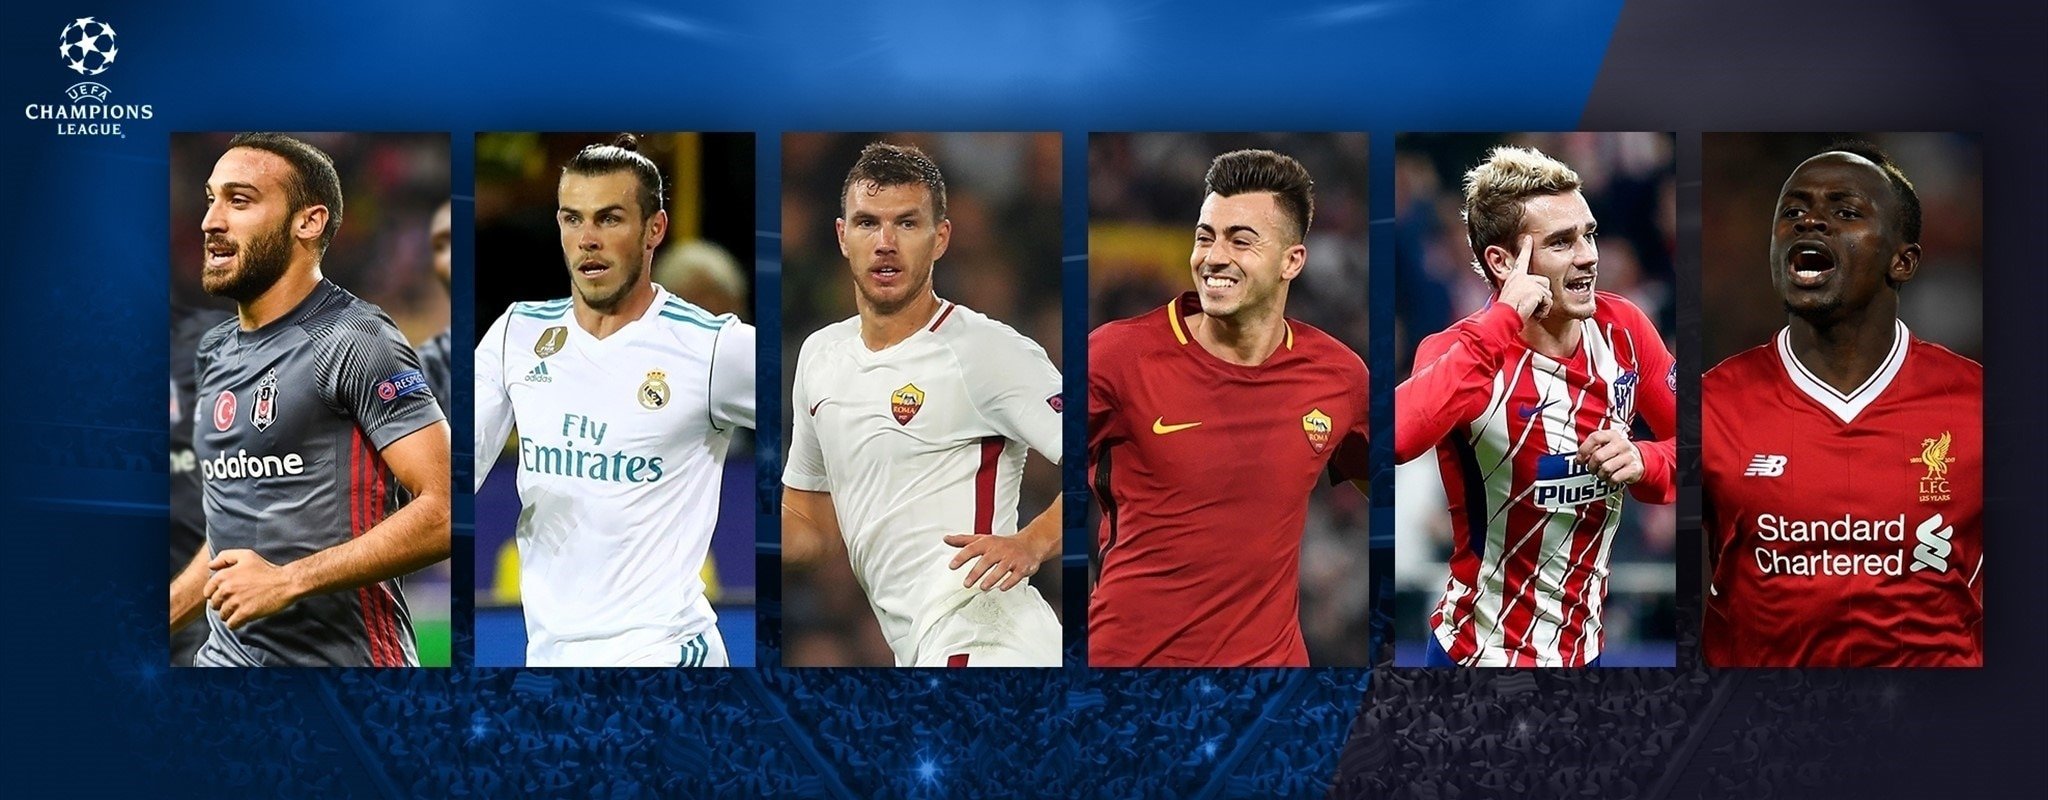 Vote for your Champions League Goal of the group stage